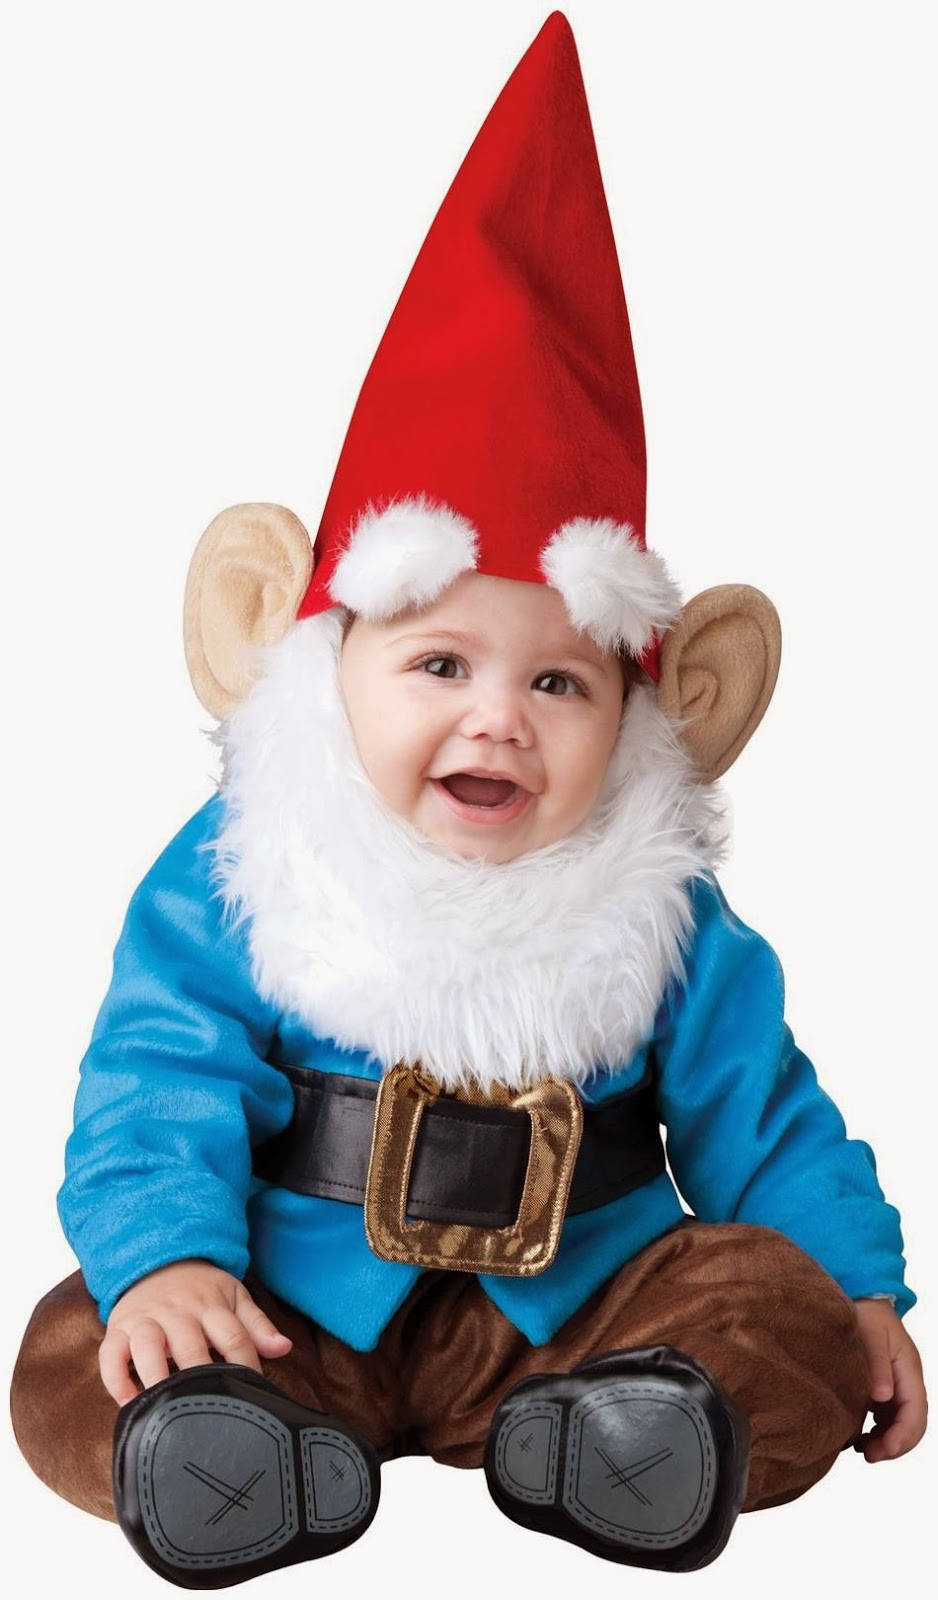 Gnome In Garden: Best Halloween Costume Deals: Christmas Costumes For Kids